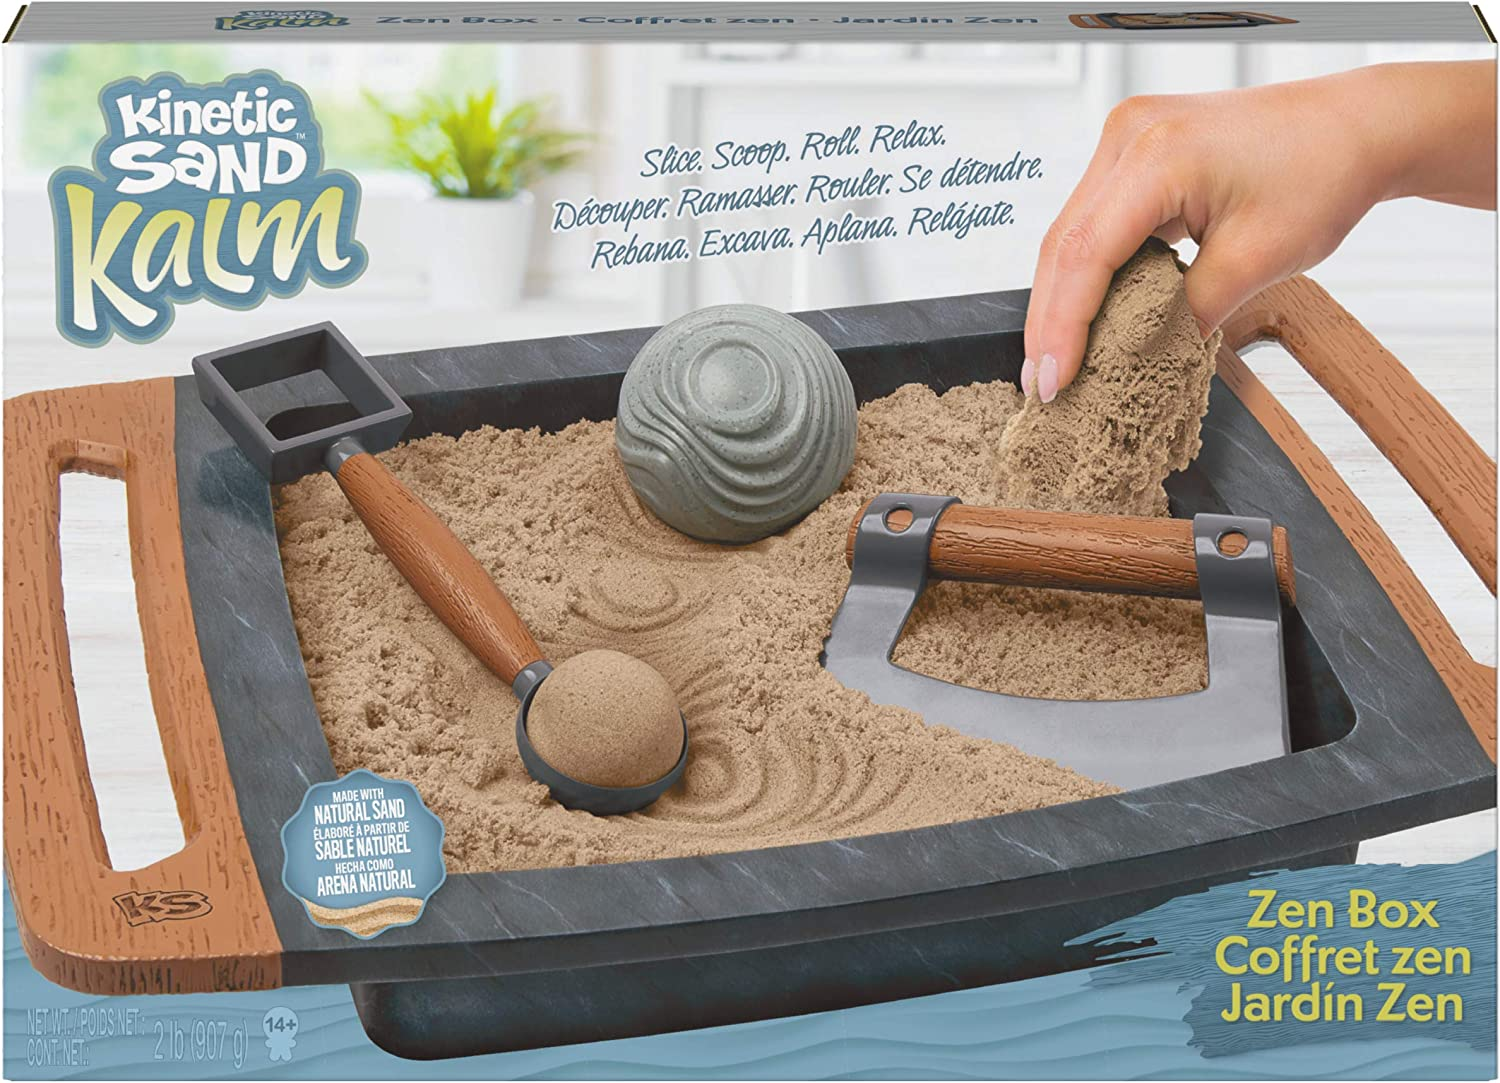 Kinetic Sand Kalm, Zen Box Set for Adults with 3 Tools for Relaxing Sensory Play